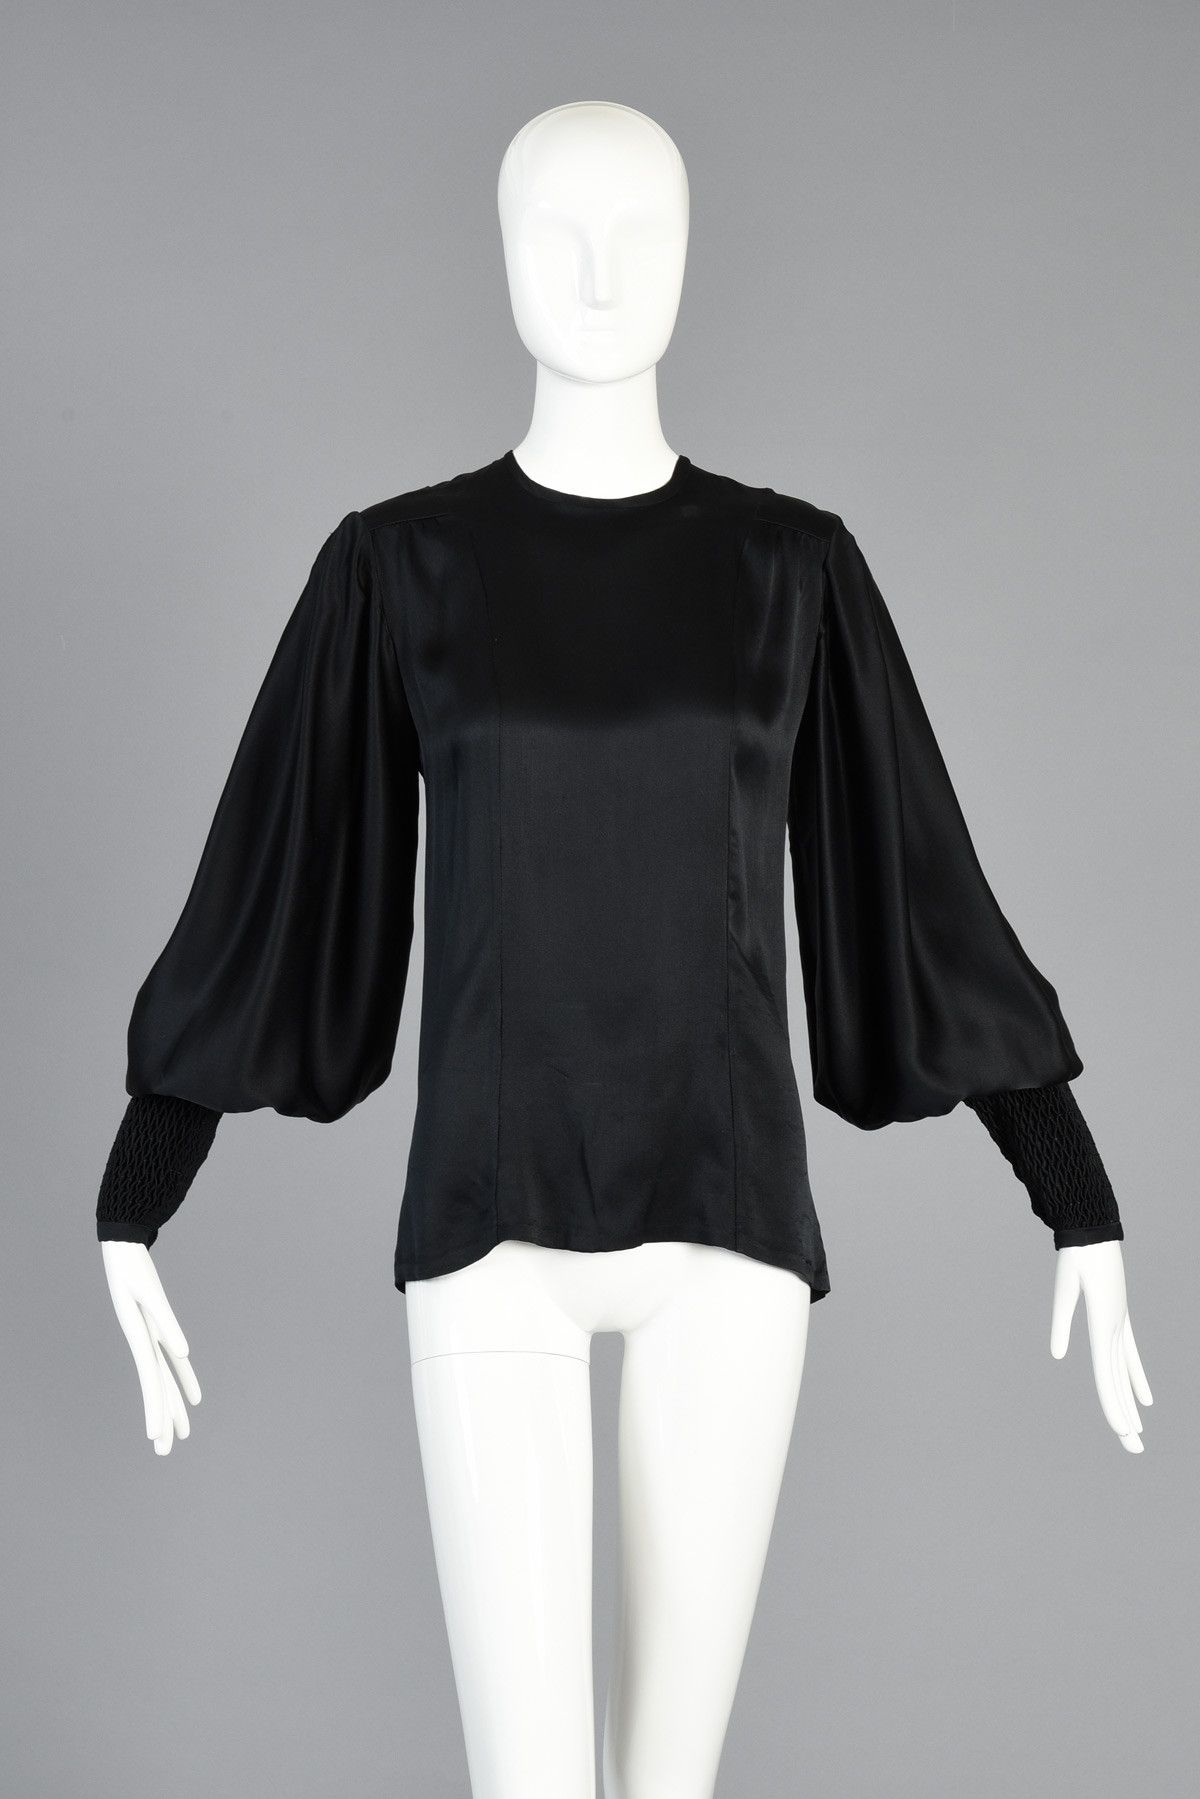 70s Thea Porter Couture Silk Blouse w/Massive Blouson Sleeves | BUSTOWN MODERN